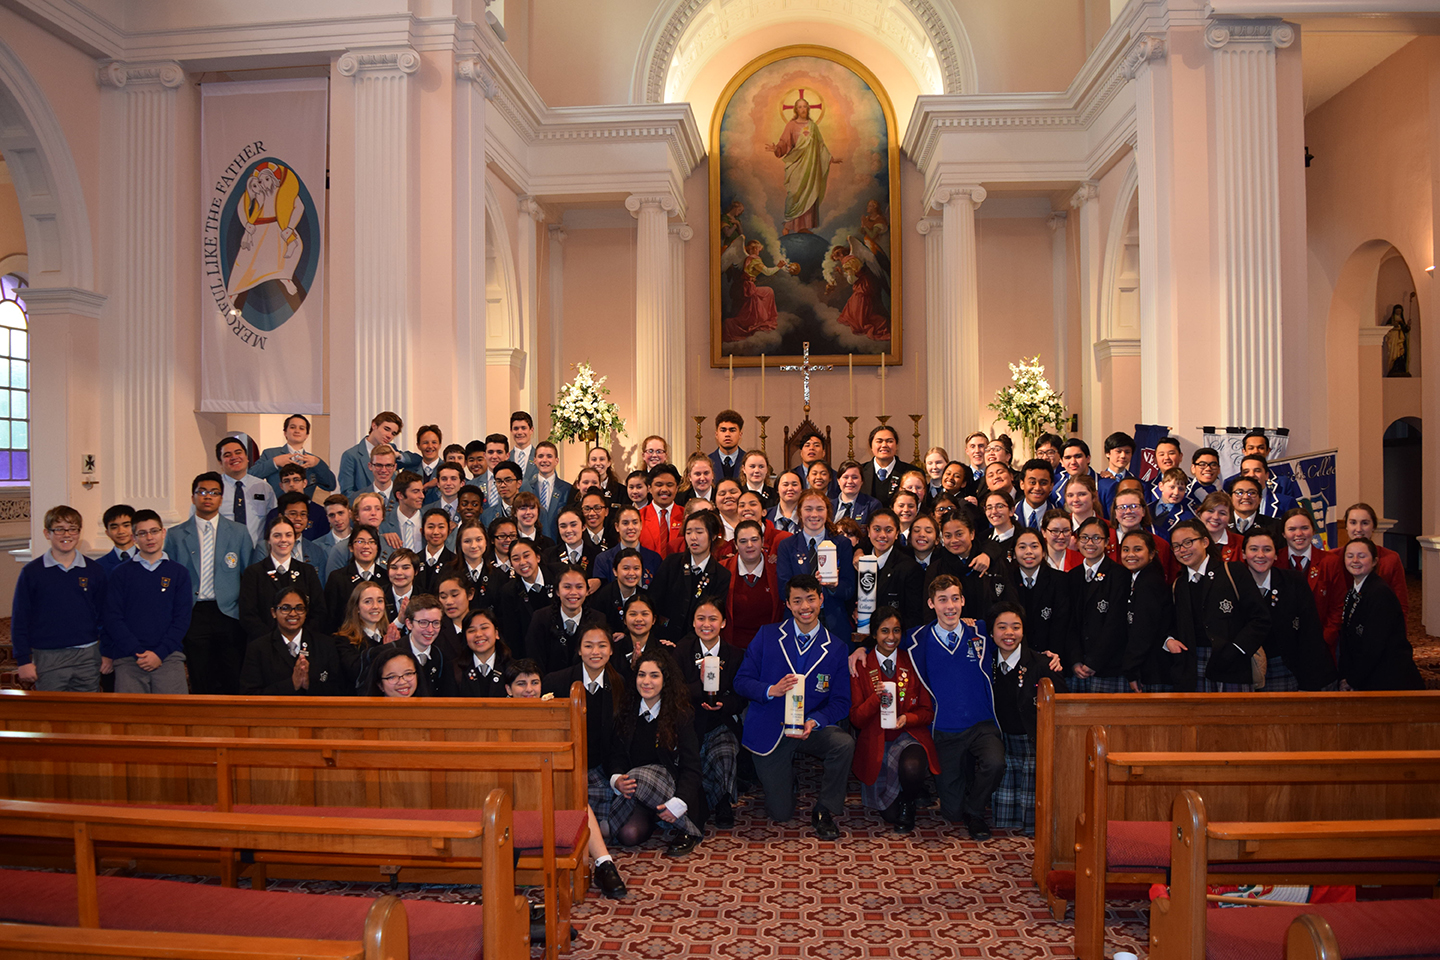 Young Vinnies Celebrate Mass Archdiocese of Wellington